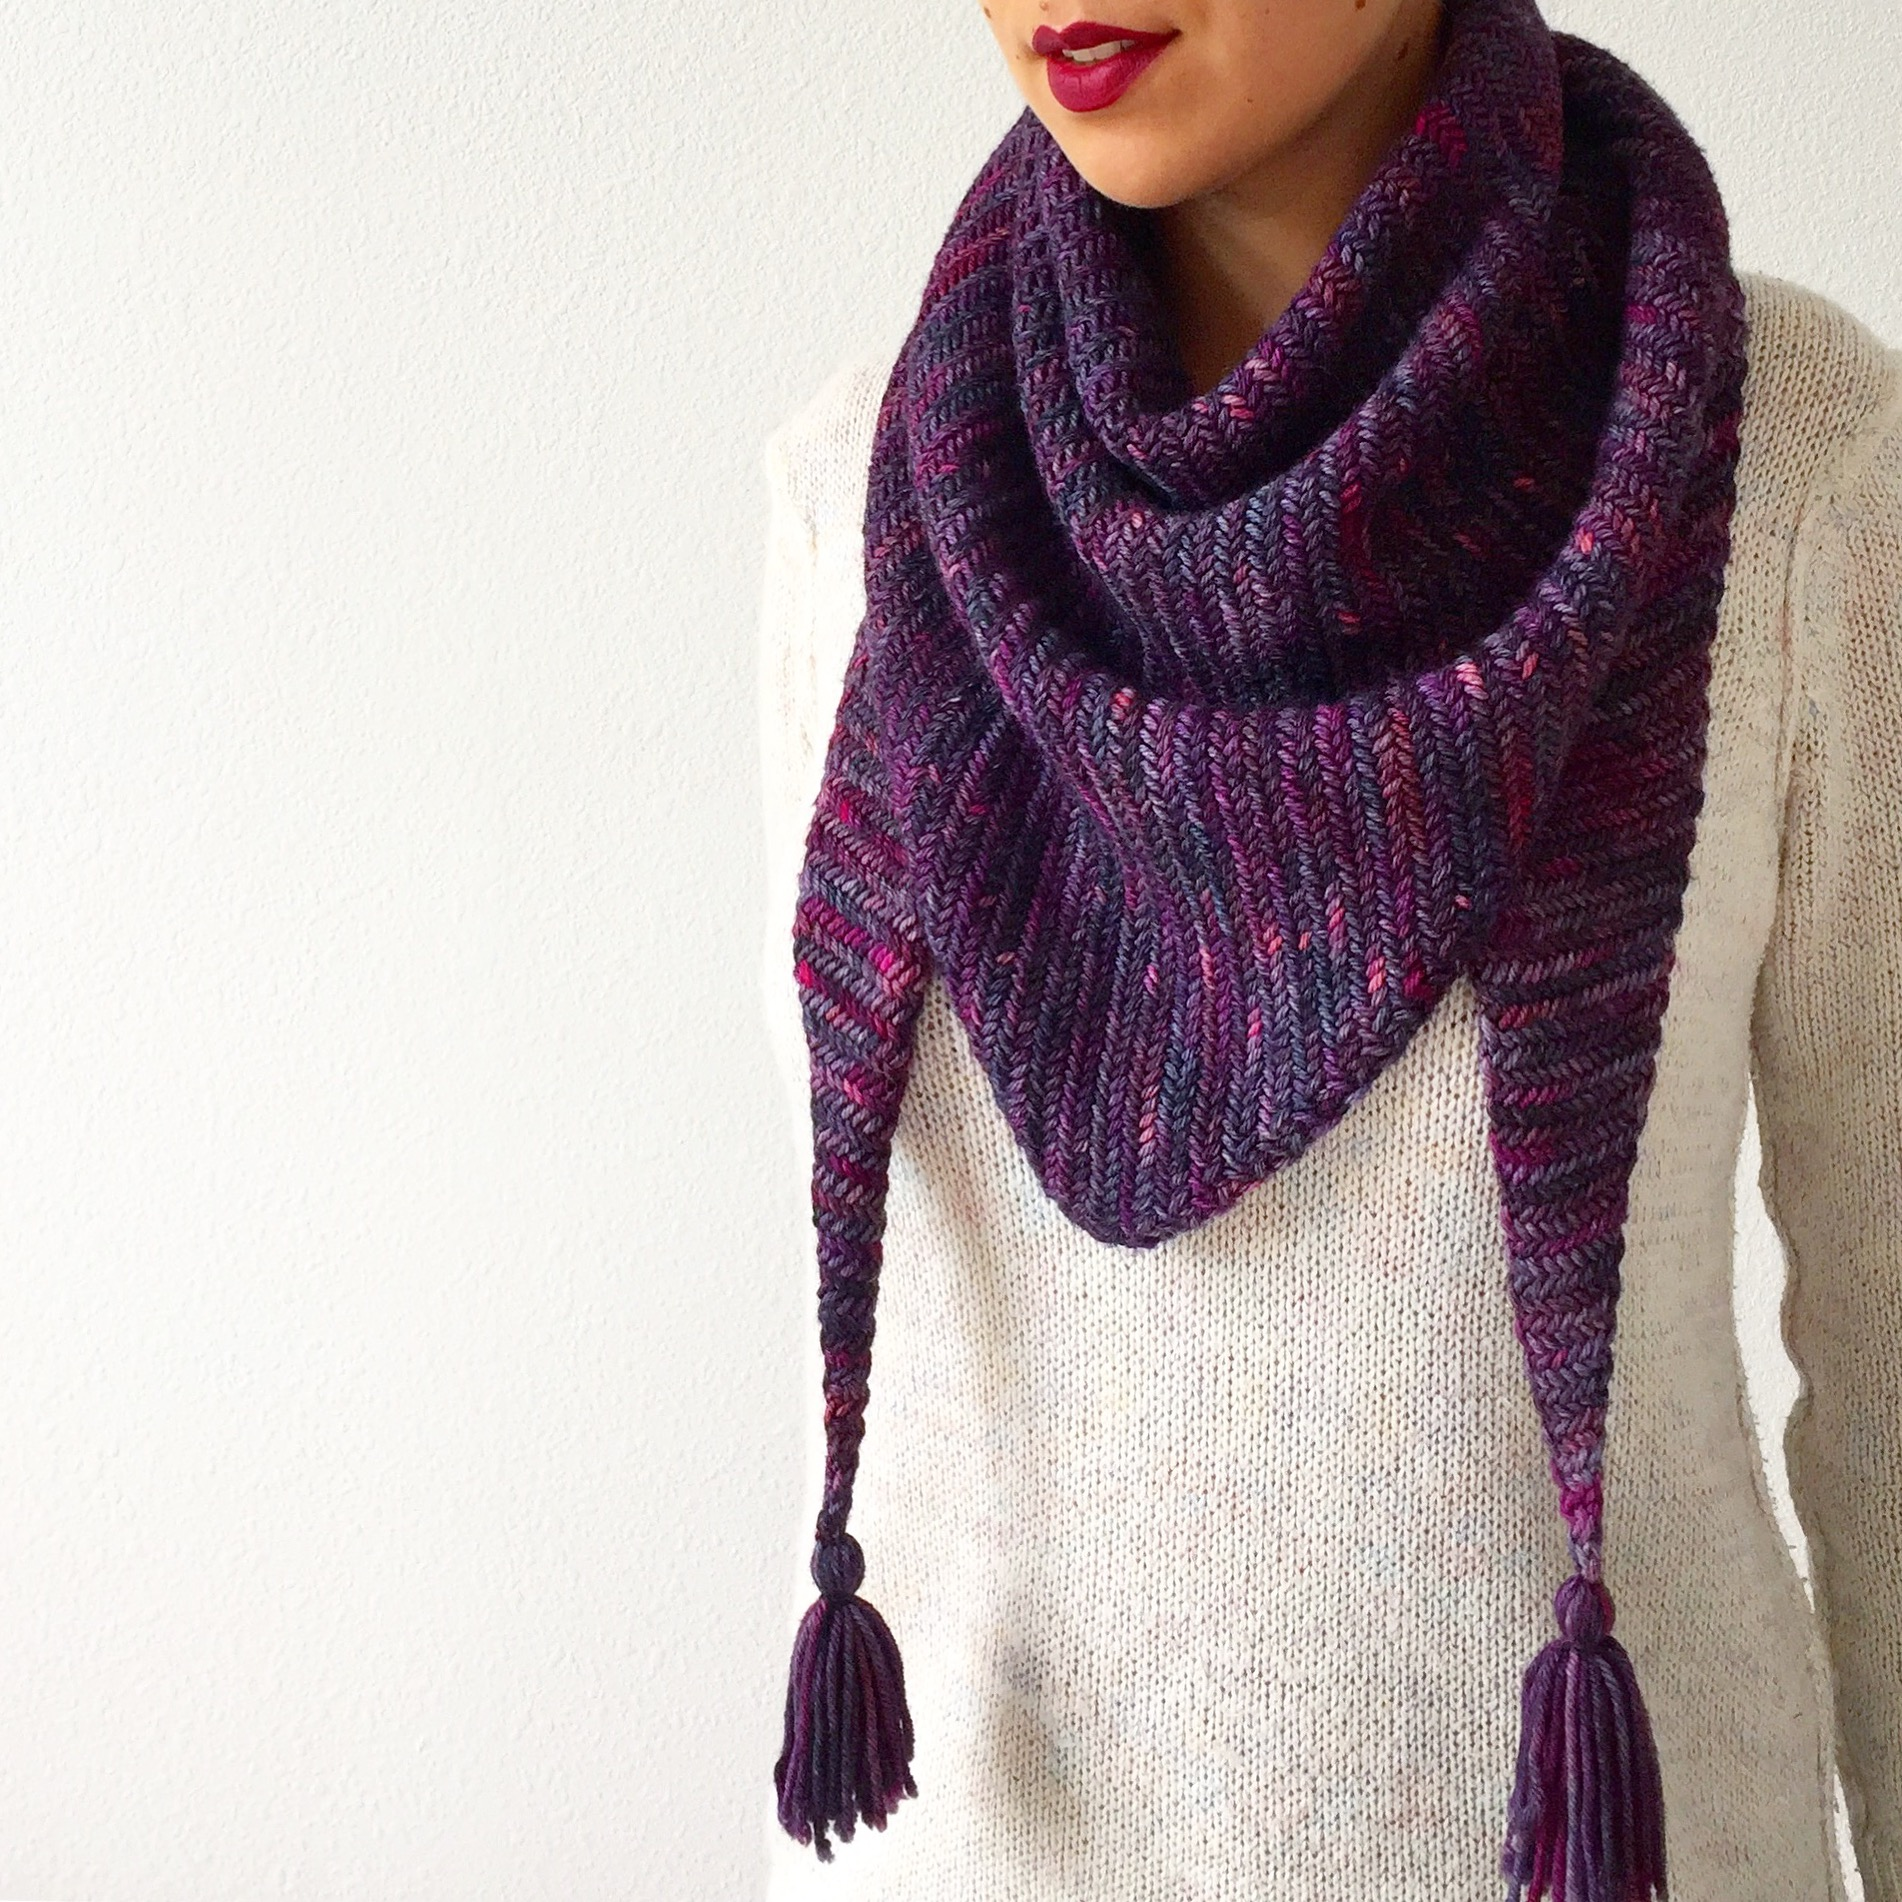 How to knit Sorceress Scarf